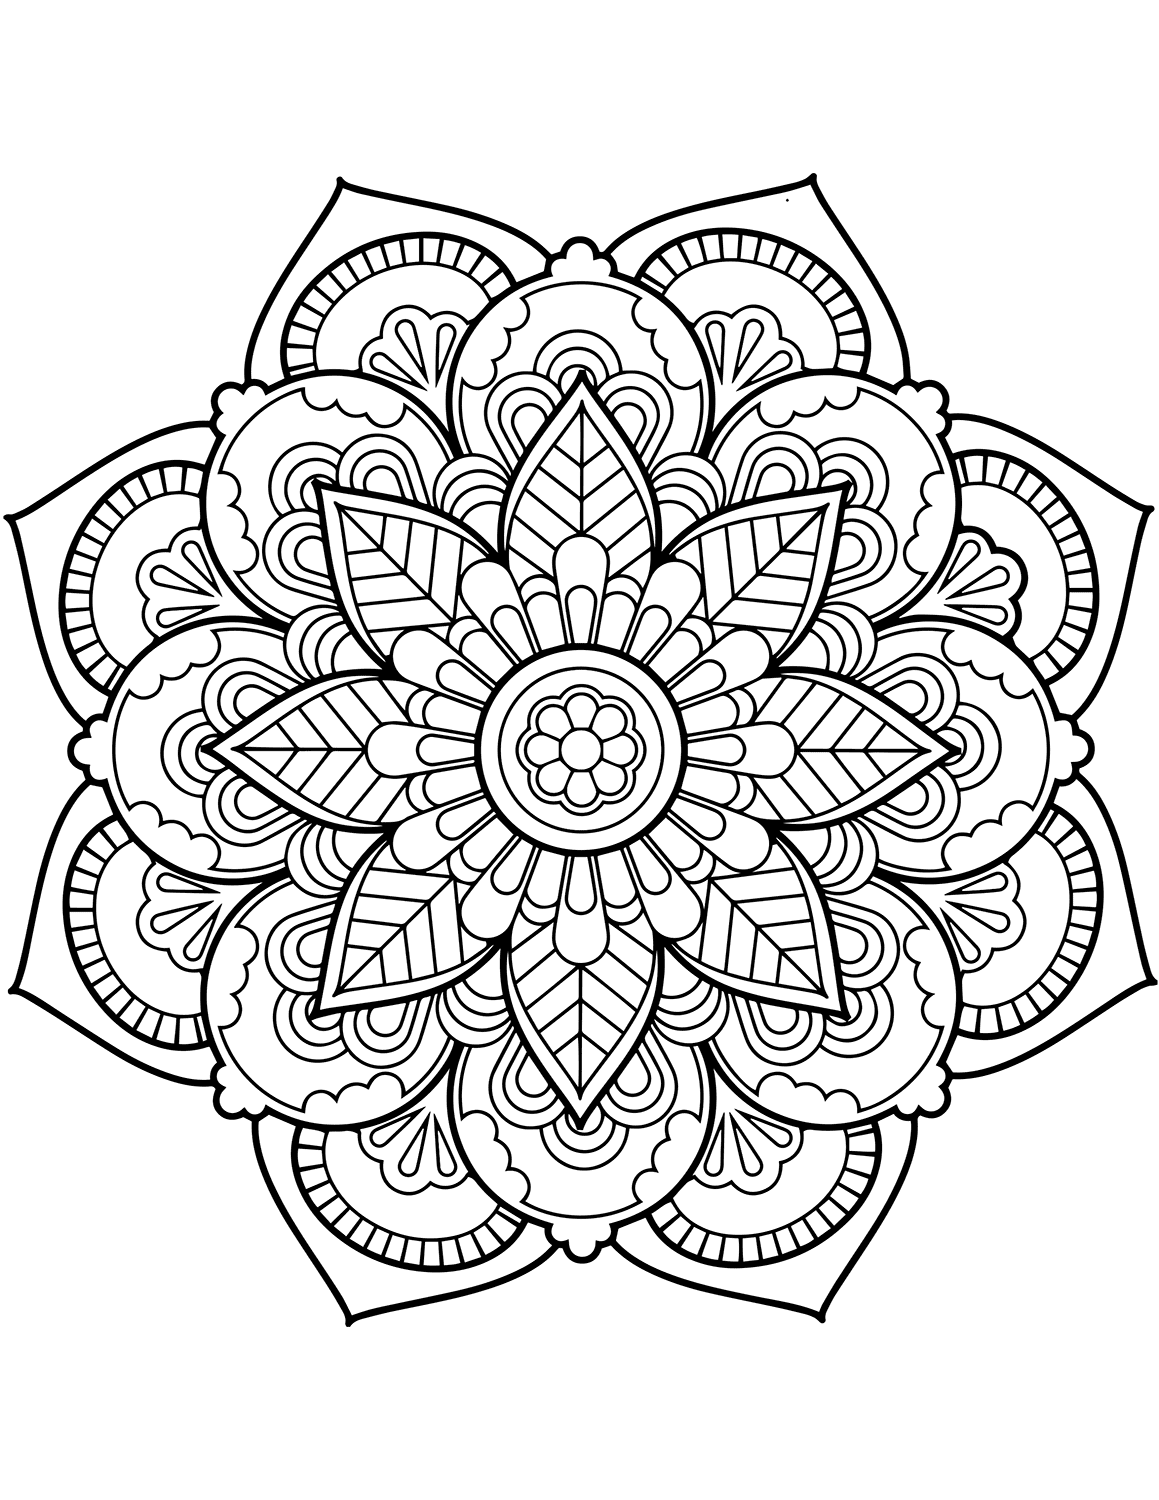 mandalas coloring pages mandala coloring pages for kids to download and print for free pages coloring mandalas